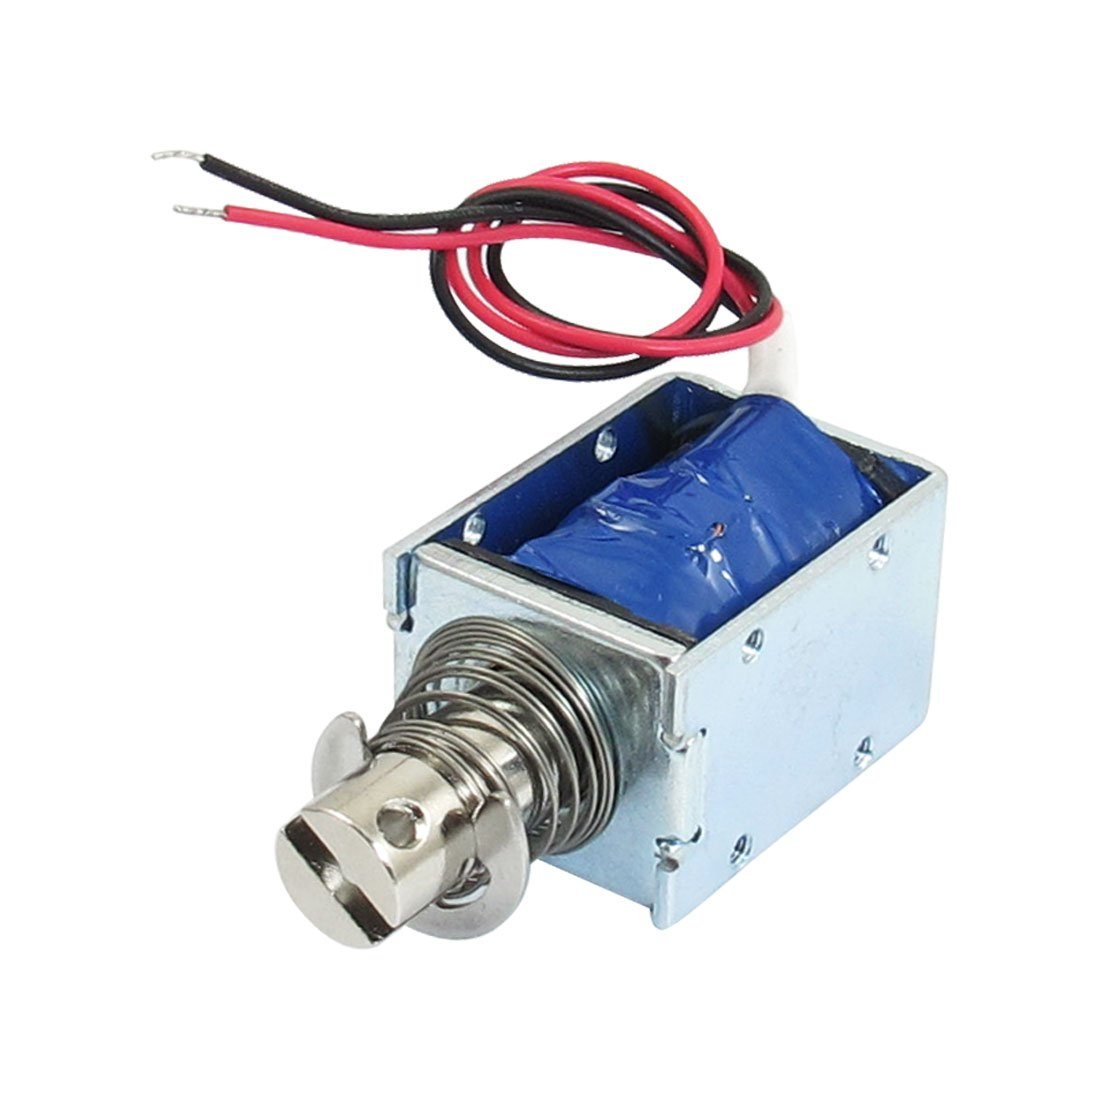 Uxcell a12120600ux0144 Stroke Open Frame Electric Linear Solenoid, DC 12V, 5.6 Ohm, 1 kg Force, 10 mm